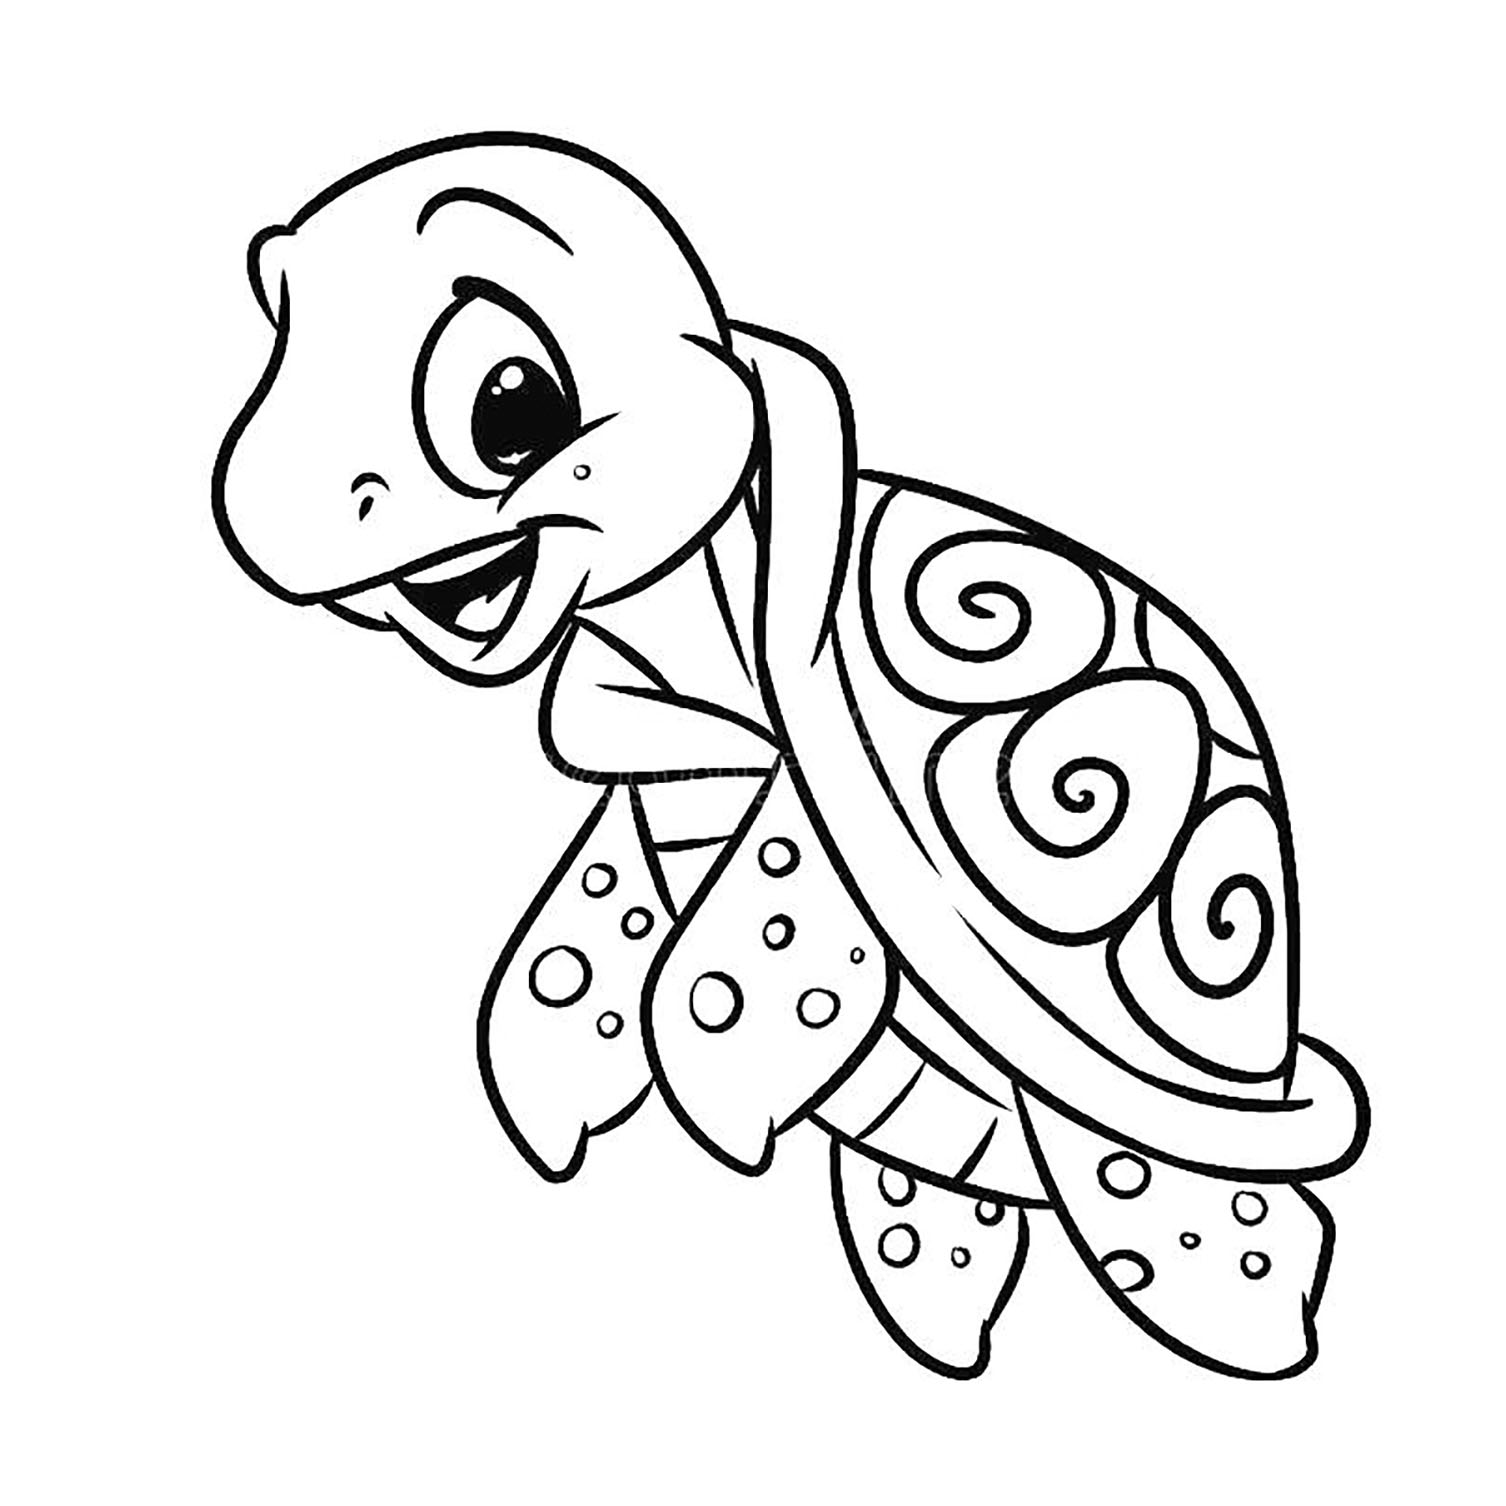 turtle coloring book page turtles free to color for children turtles kids coloring page coloring book turtle